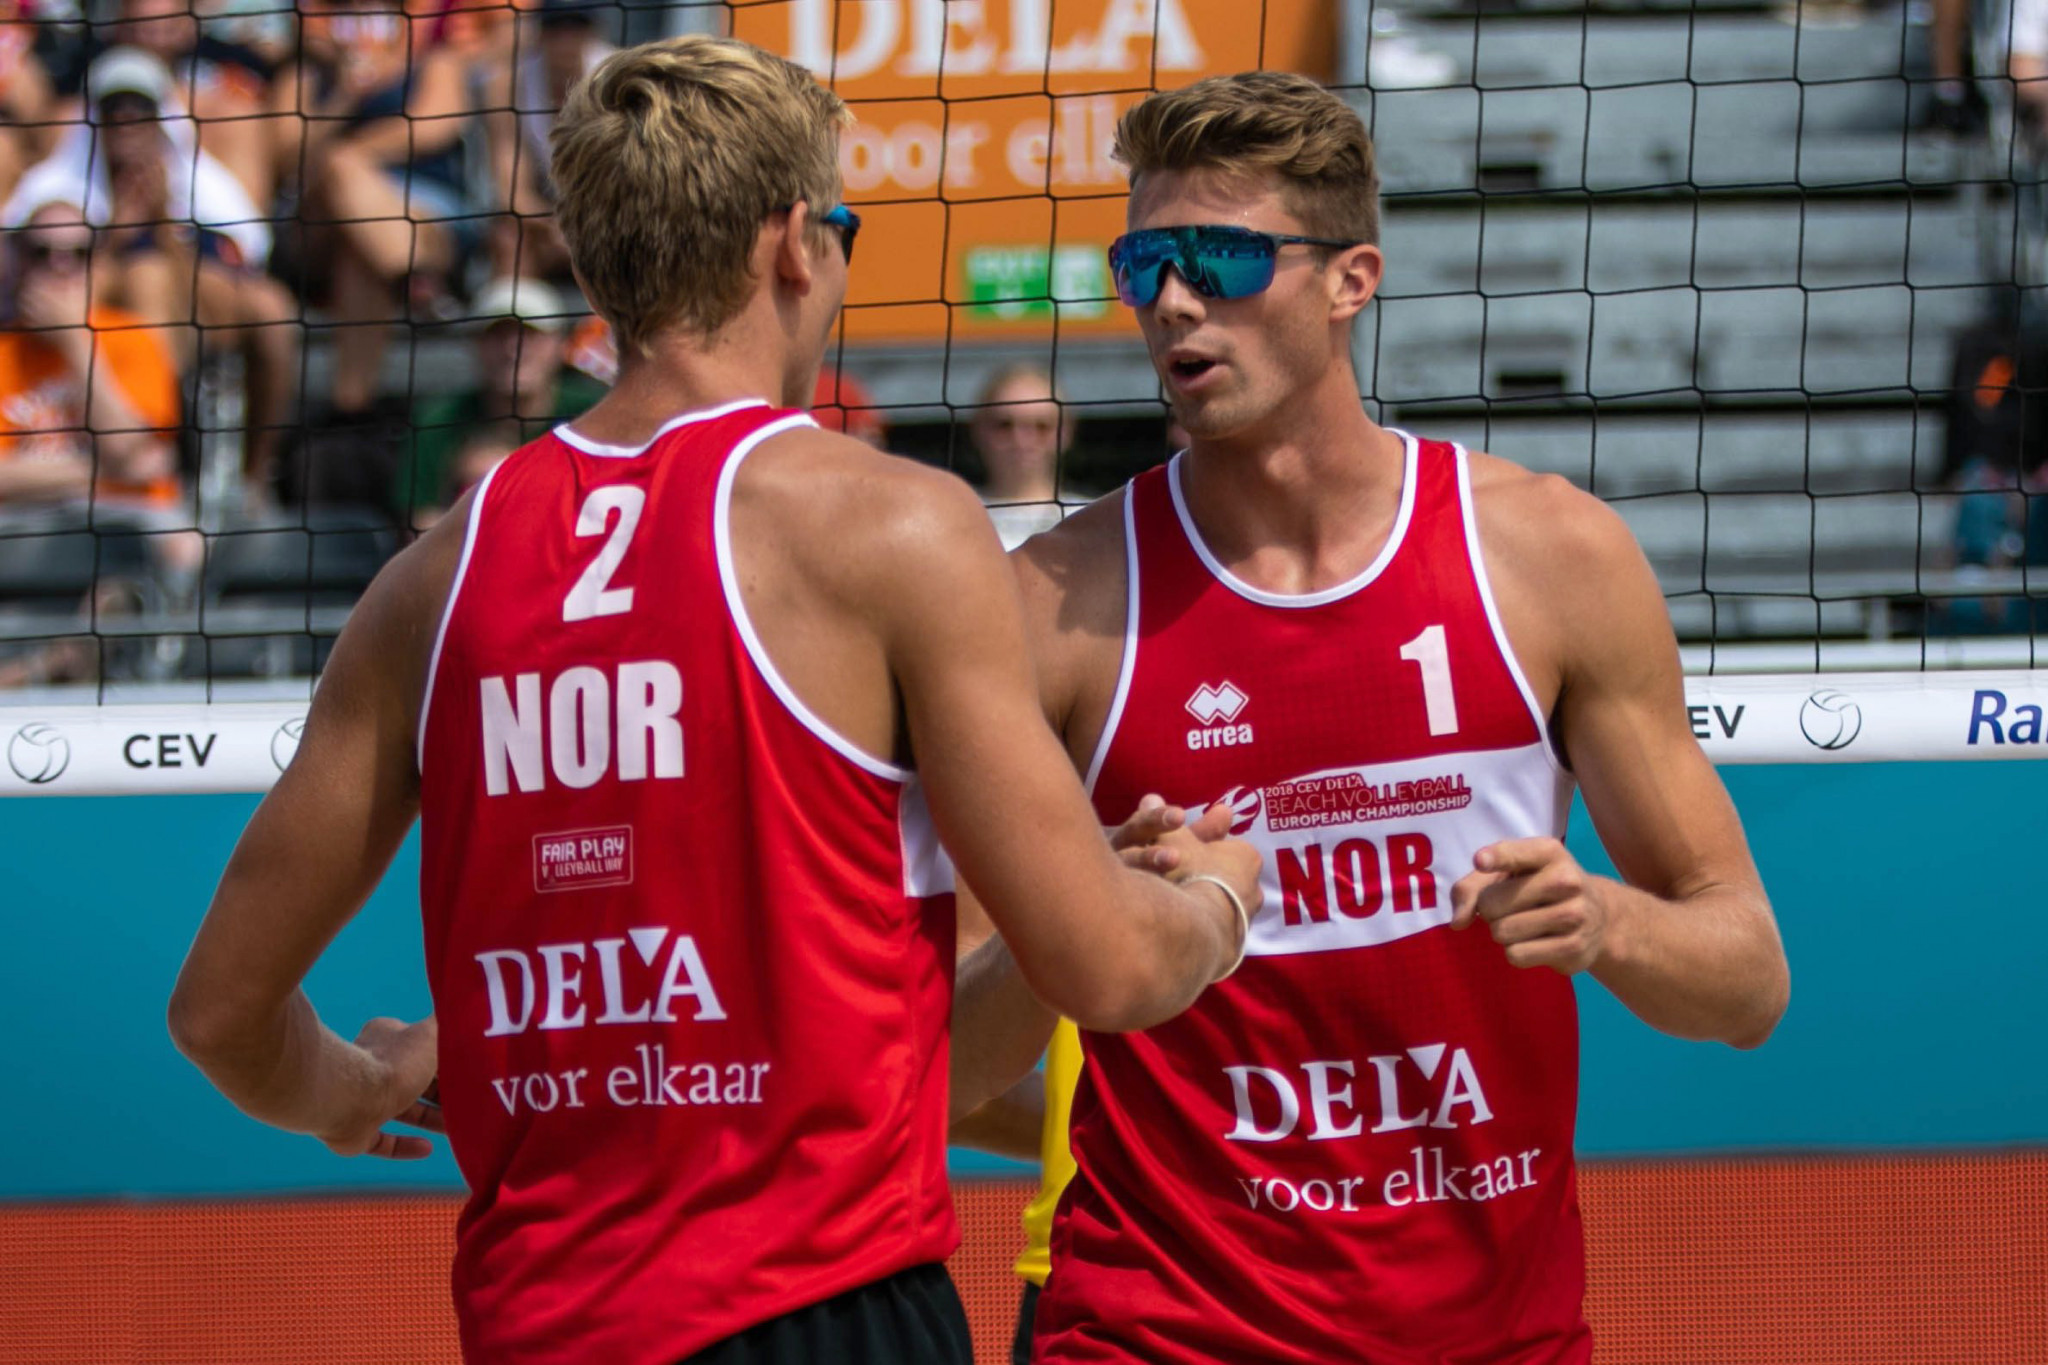 European champions Mol and Sorum book semi-final place at FIVB Beach Volleyball World Tour Finals